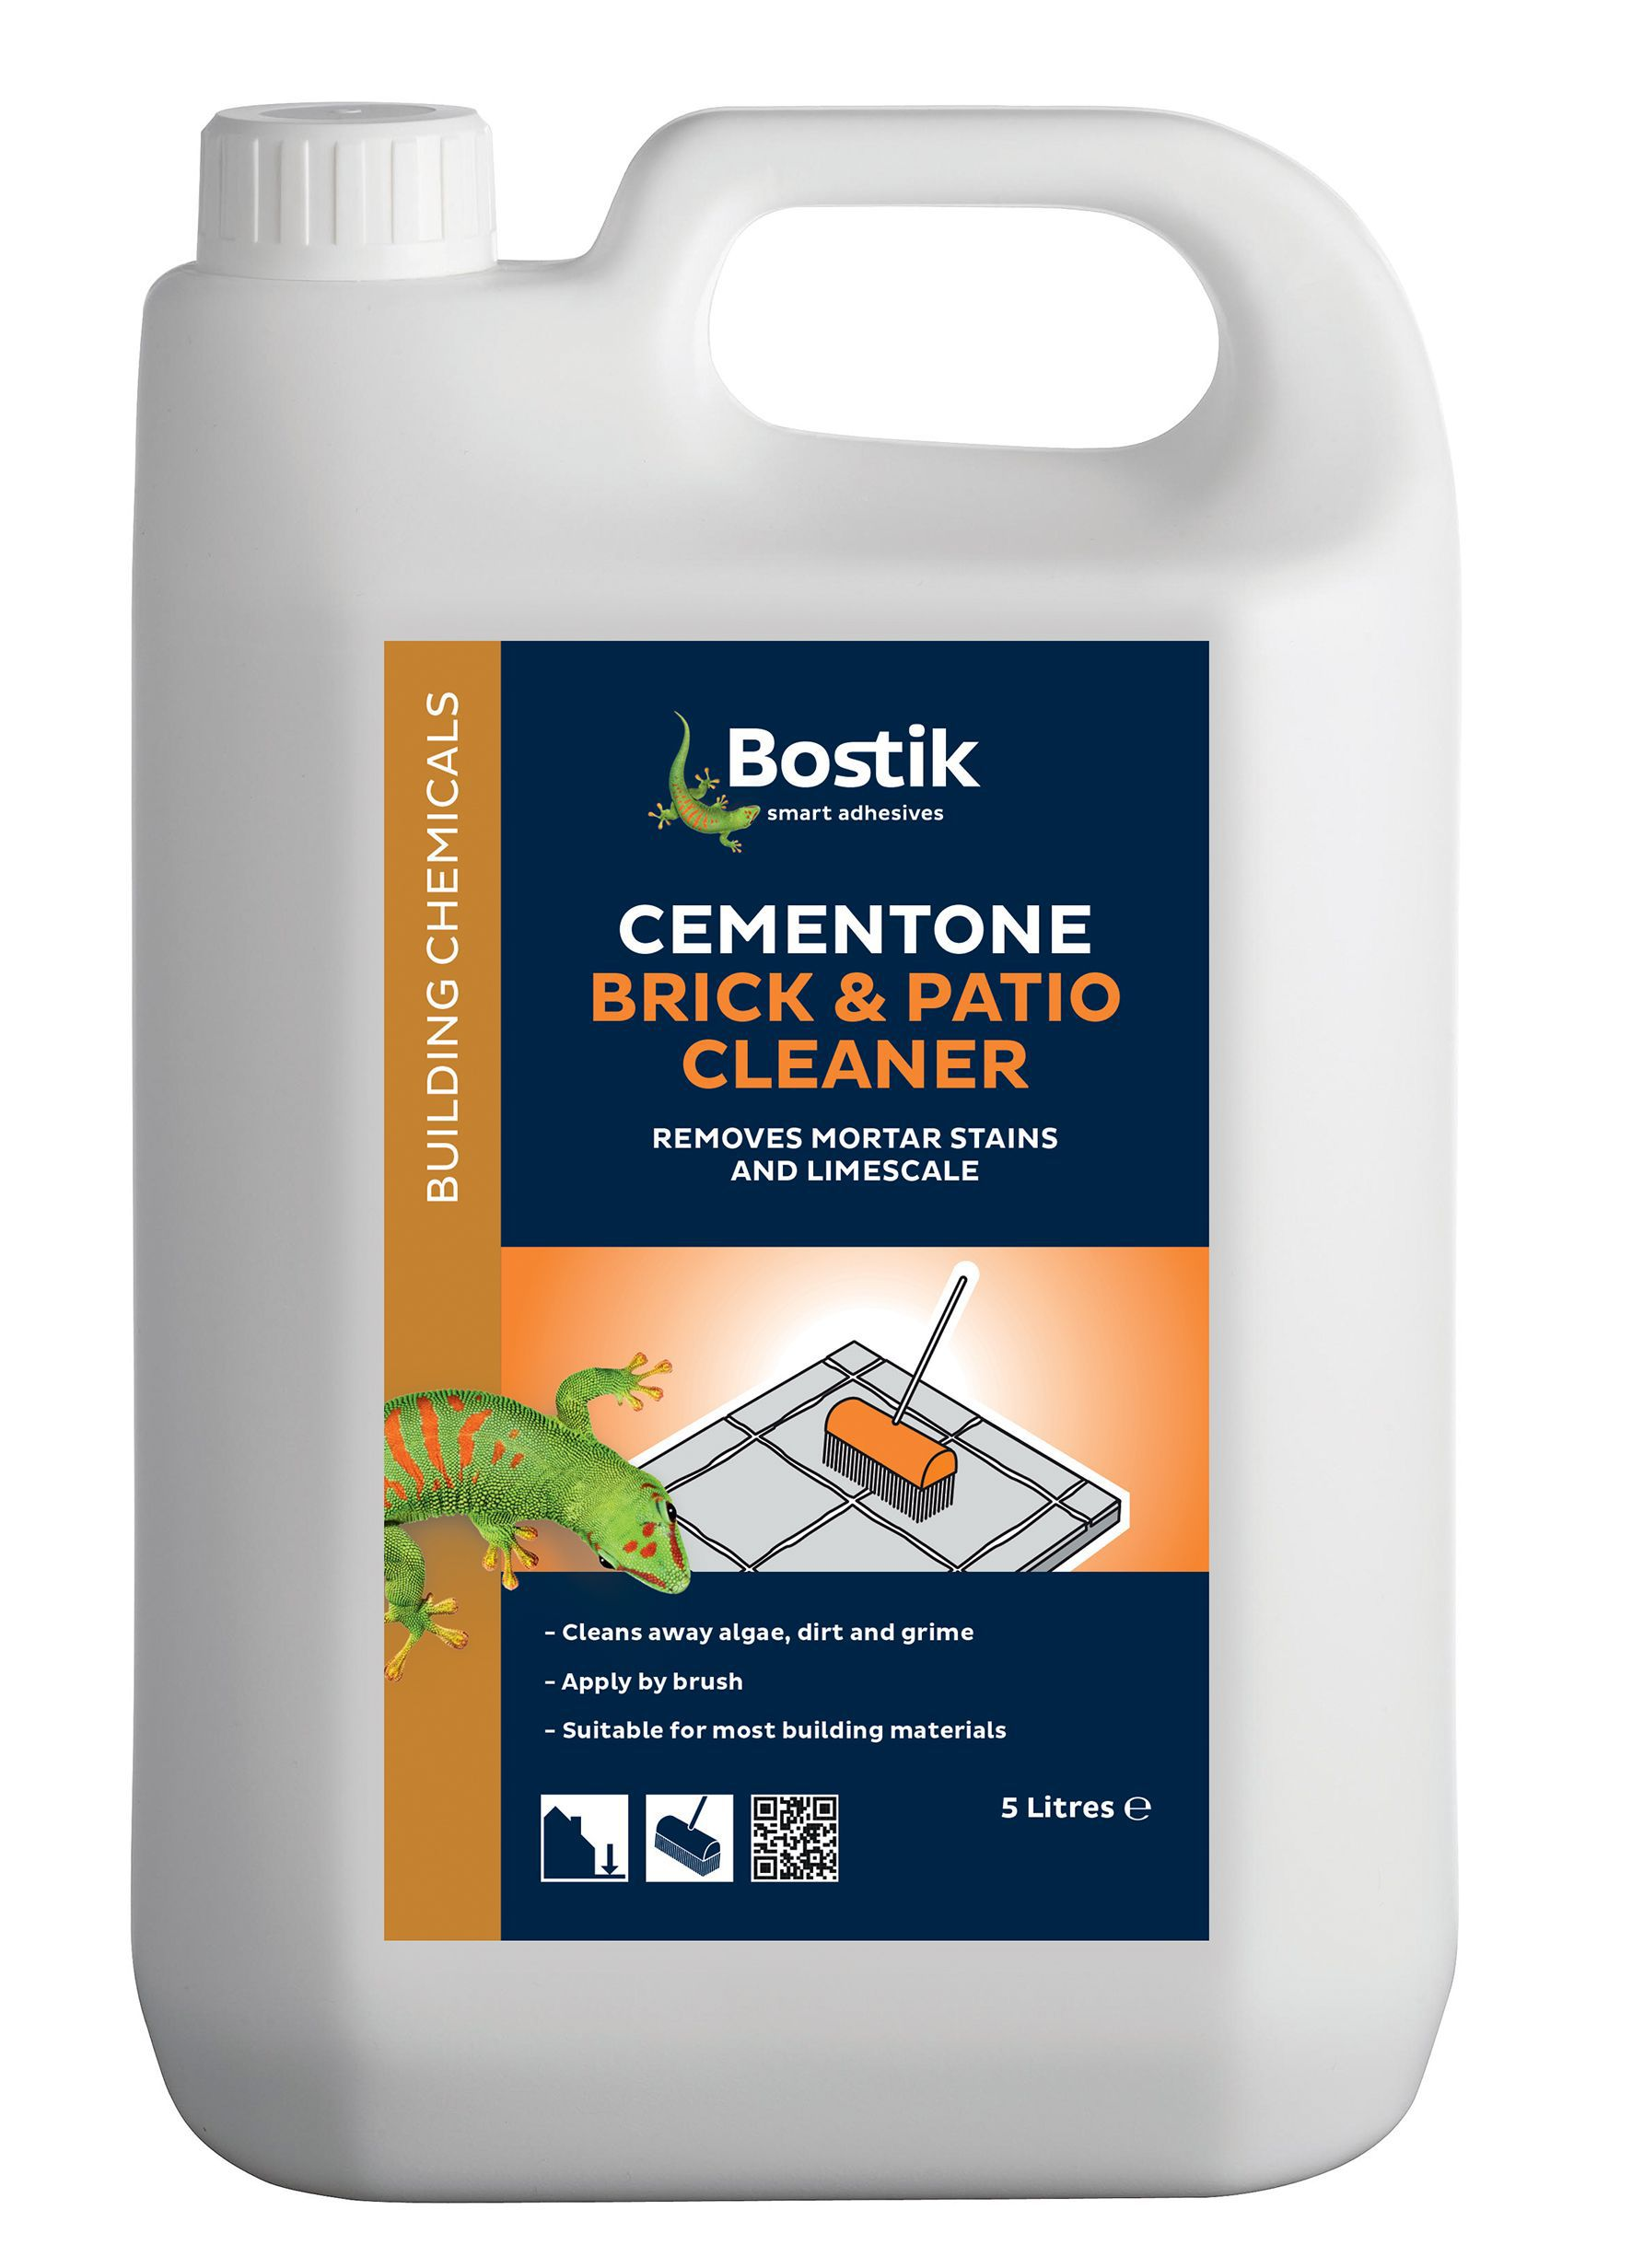 Bostik Cementone Brick U0026 Patio Cleaner 5000ml | Departments | DIY At Bu0026Q